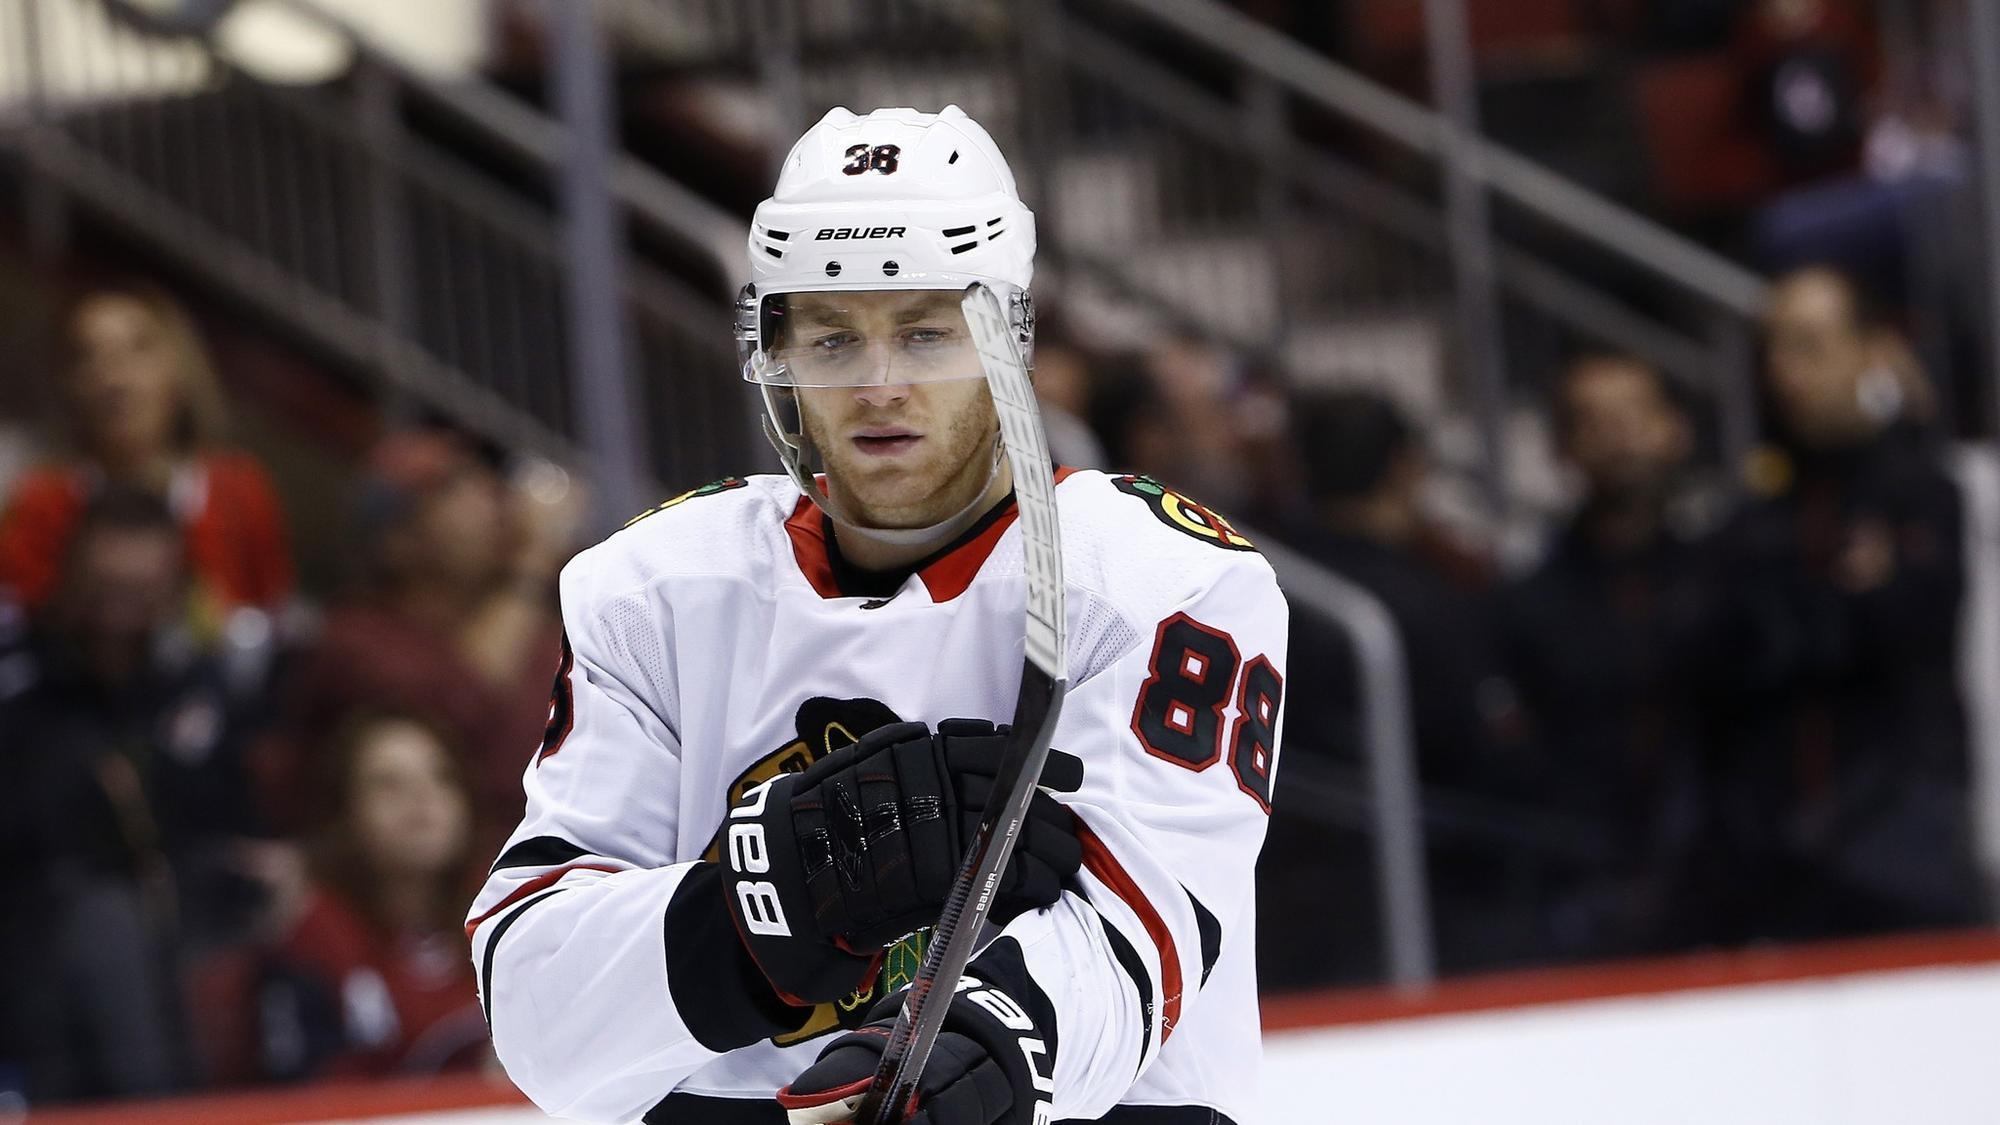 Patrick Kane leading by example on the ice for Blackhawks ...